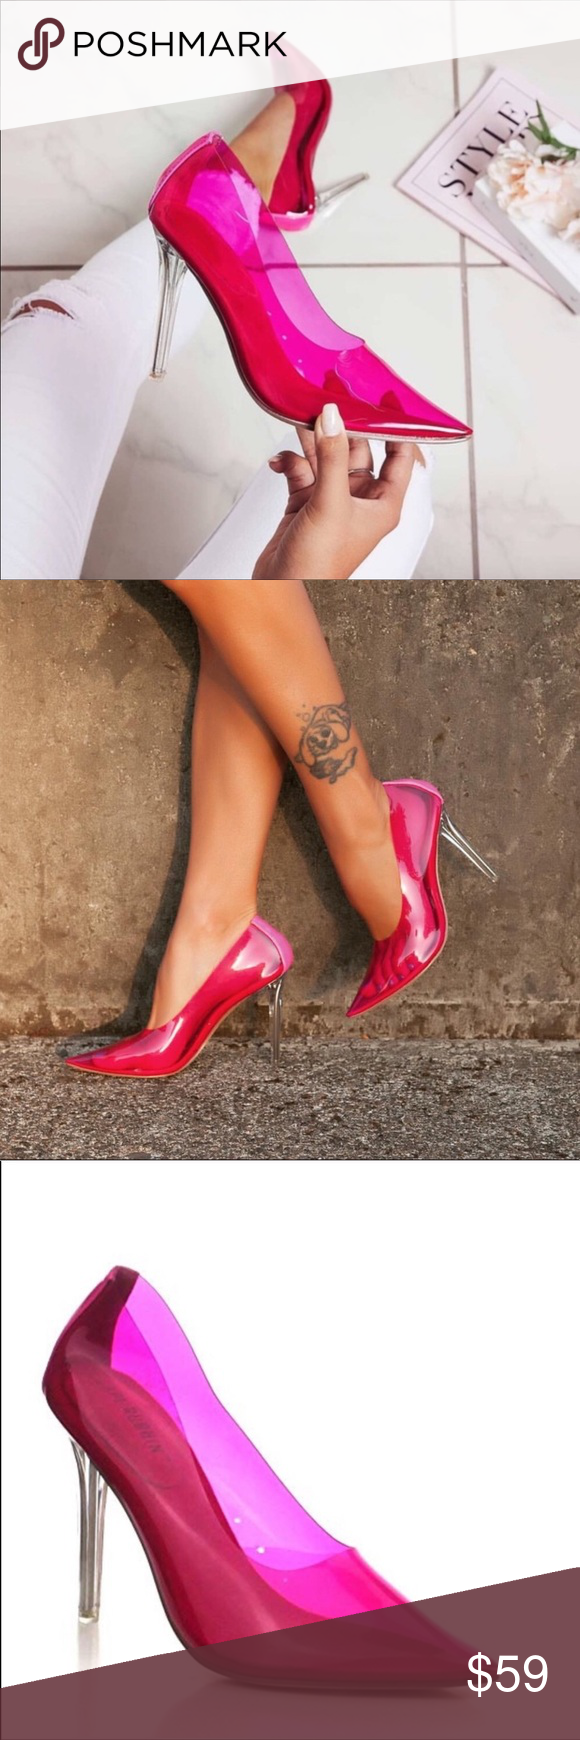 Pink Perspextranslucent Pumps-Run Half Size Small | Color